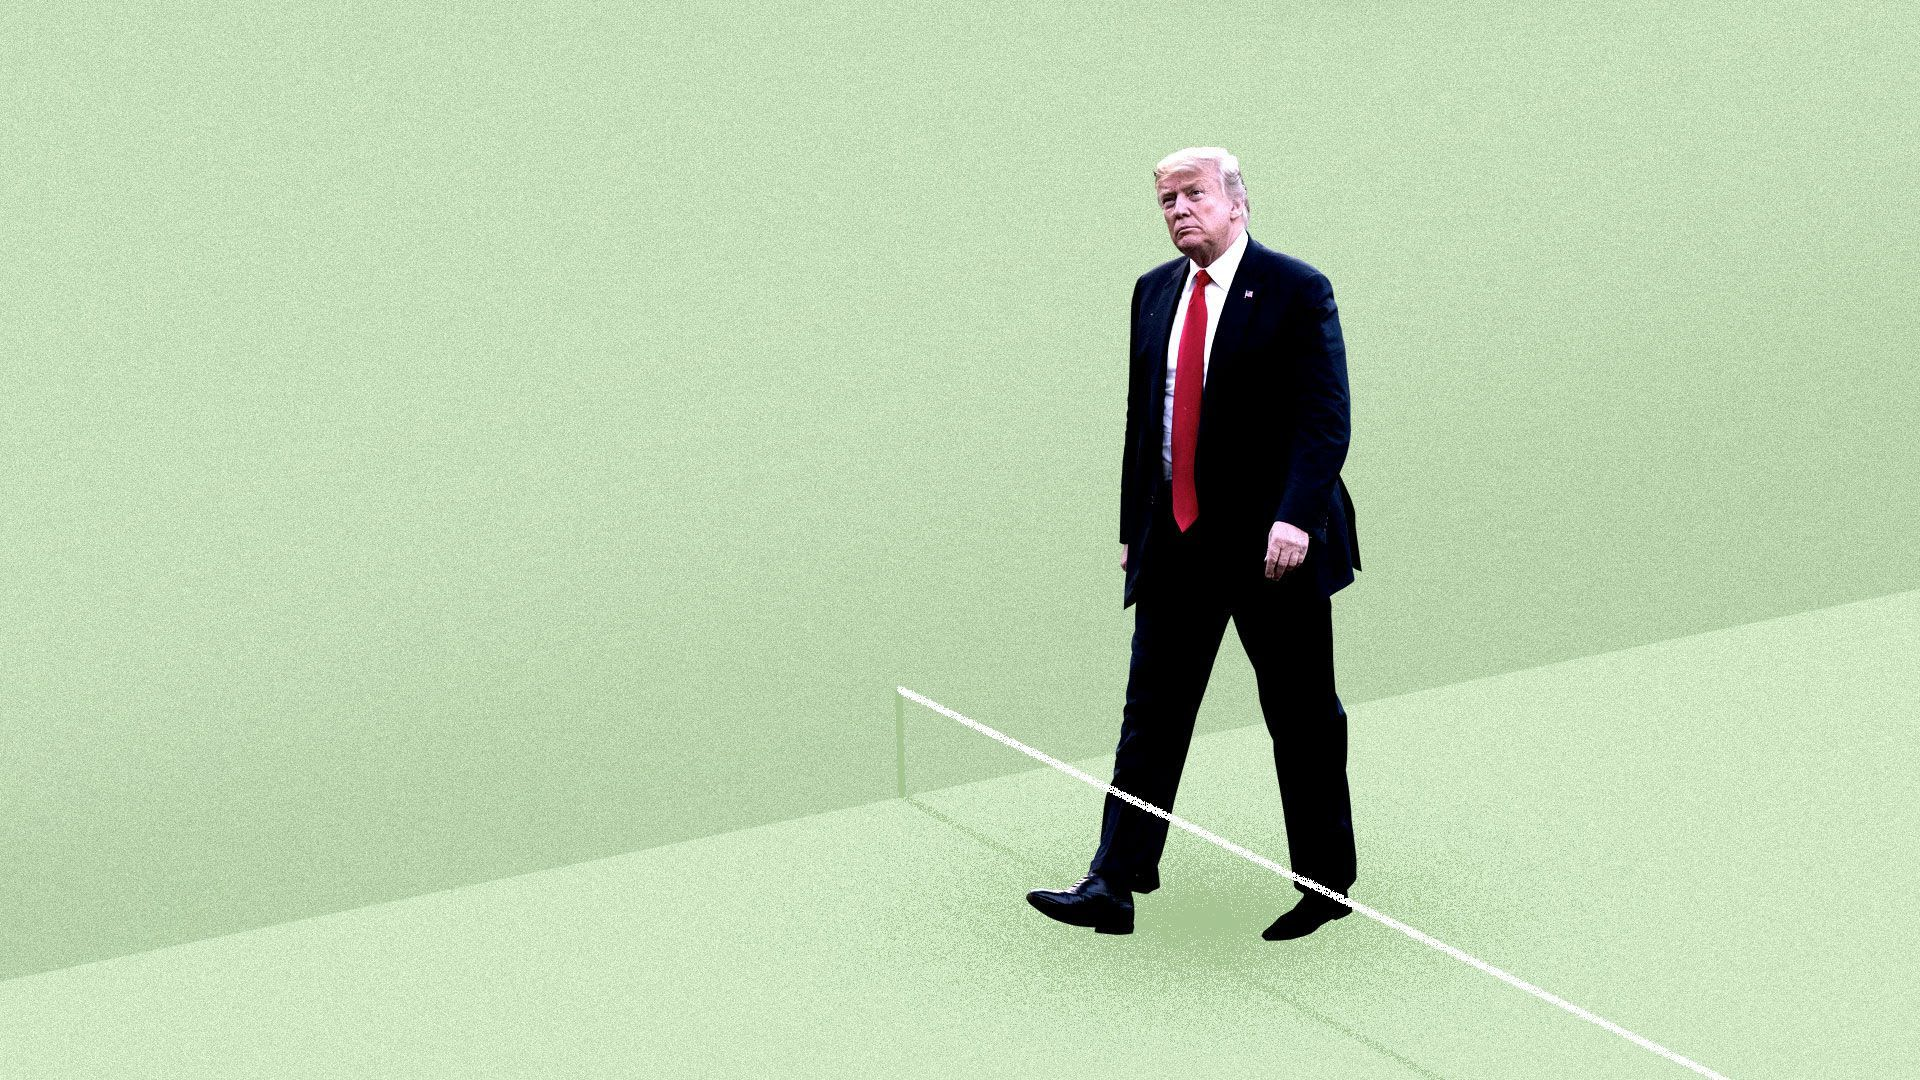 An illustration of Trump walking into a trap